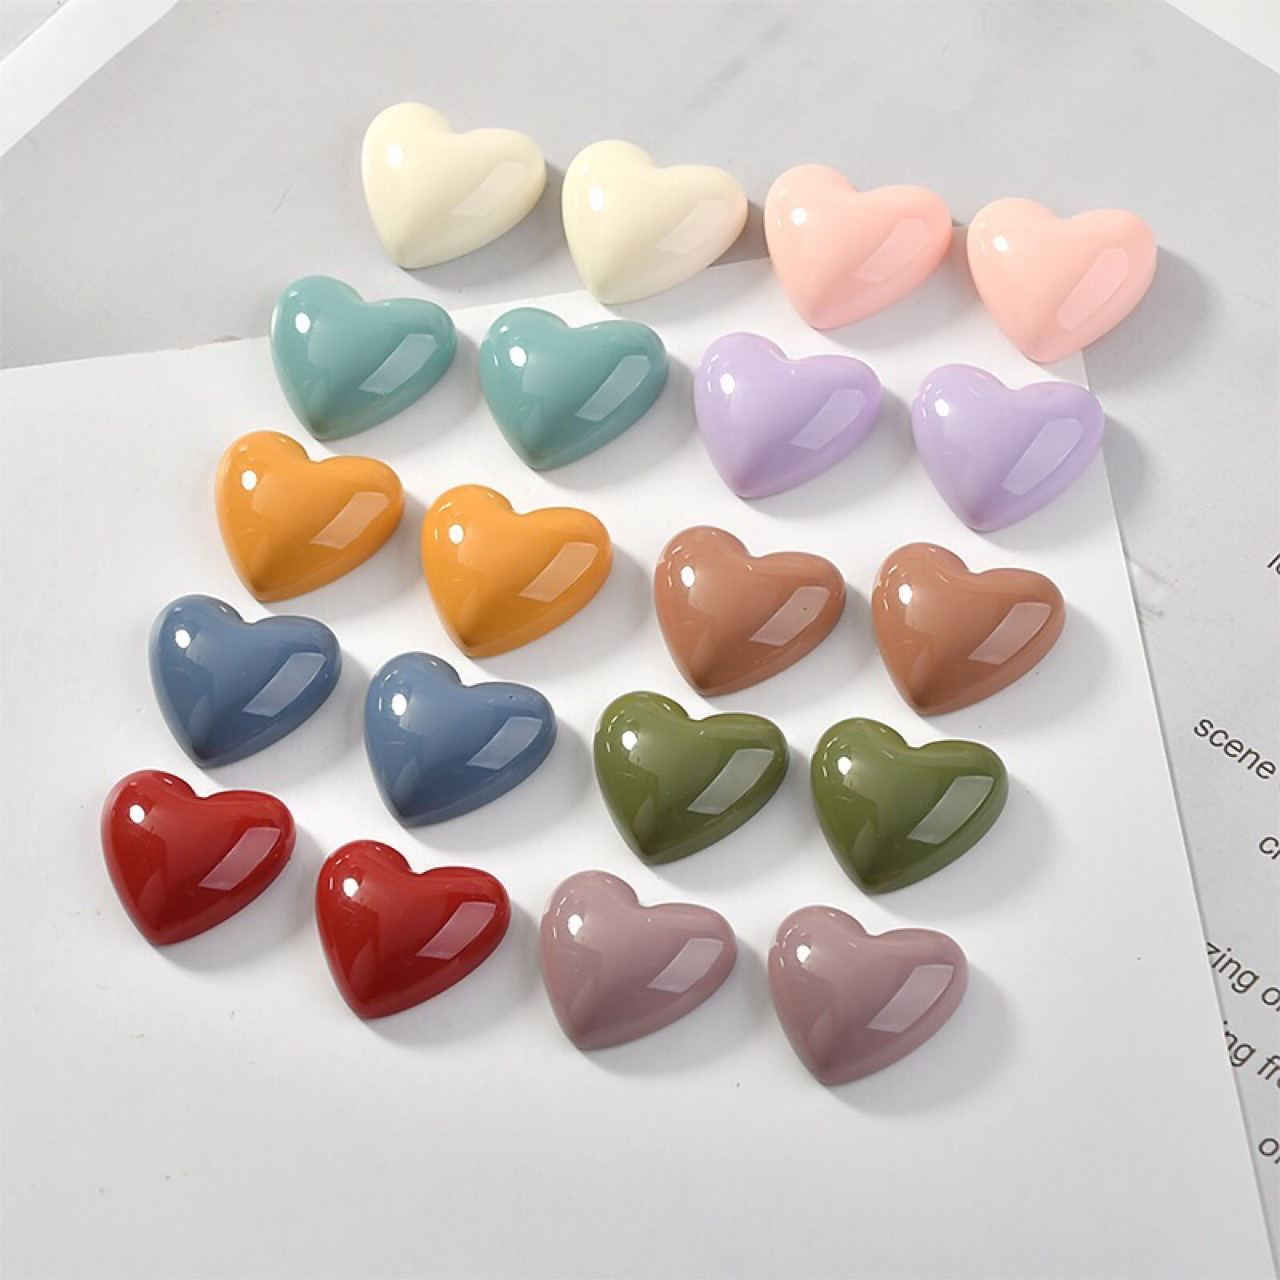 10PCS 17 * 18mm Retro Solid Color Heart Shaped Resin Earring Pendant Accessories DIY Mobile Phone Case Making Accessories